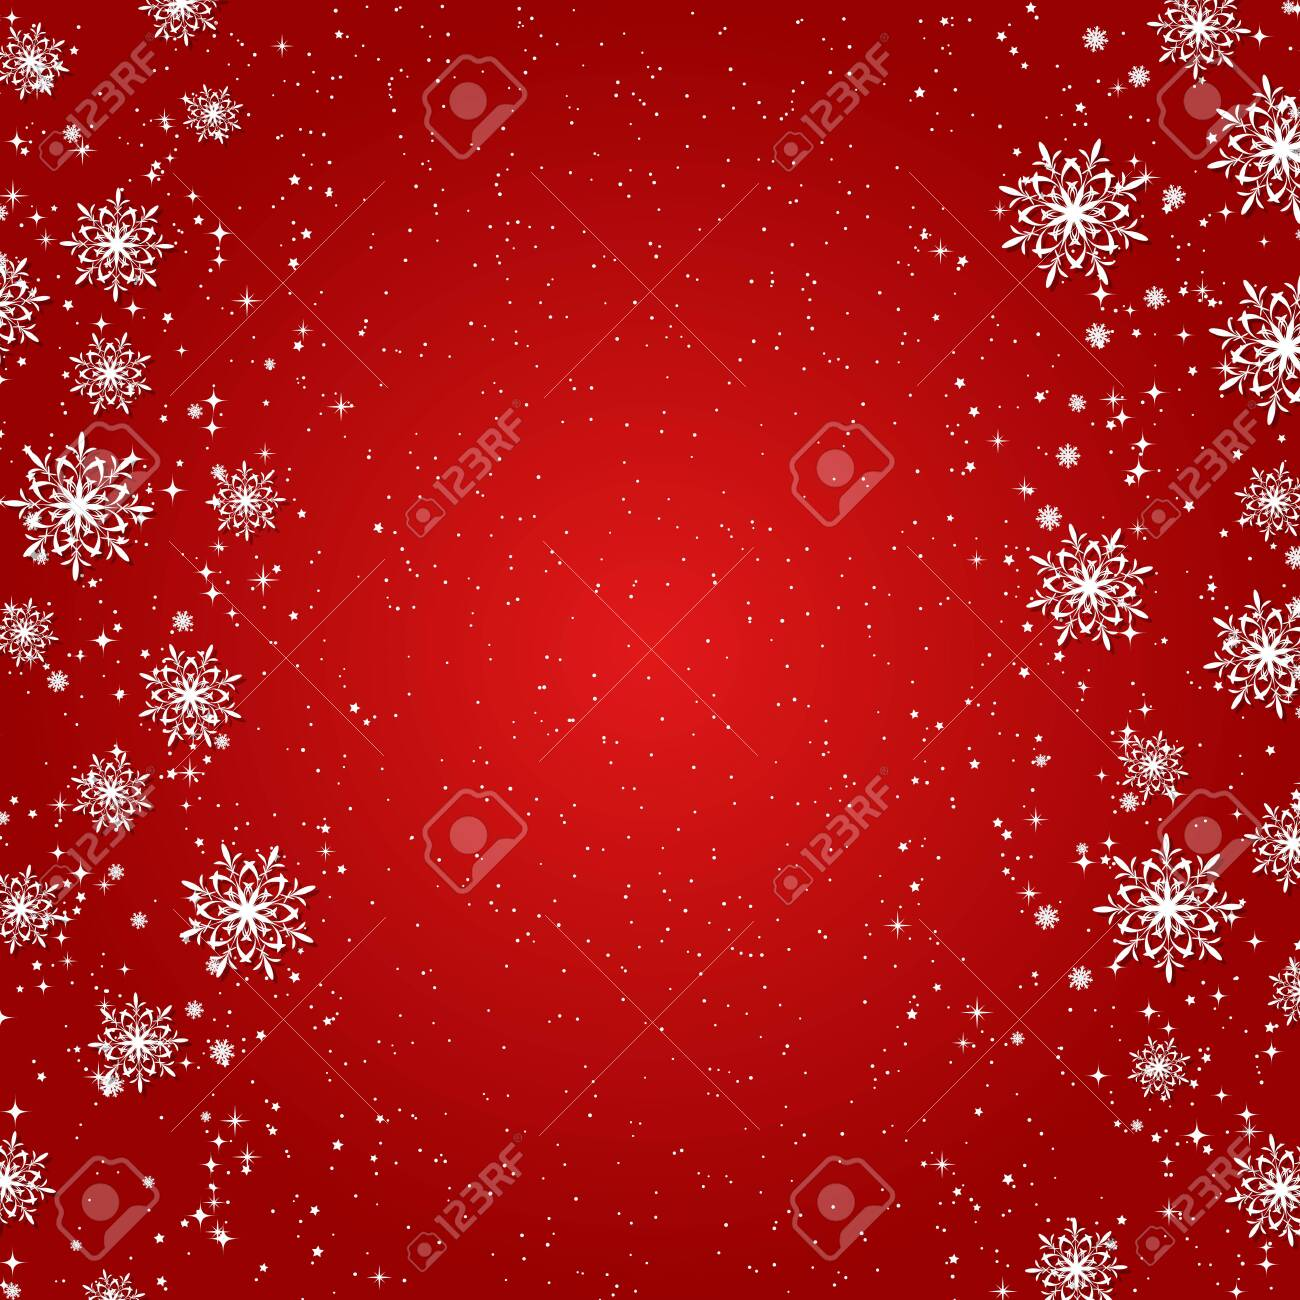 Christmas and New Year red vector background with stars and snowflakes - 137341834